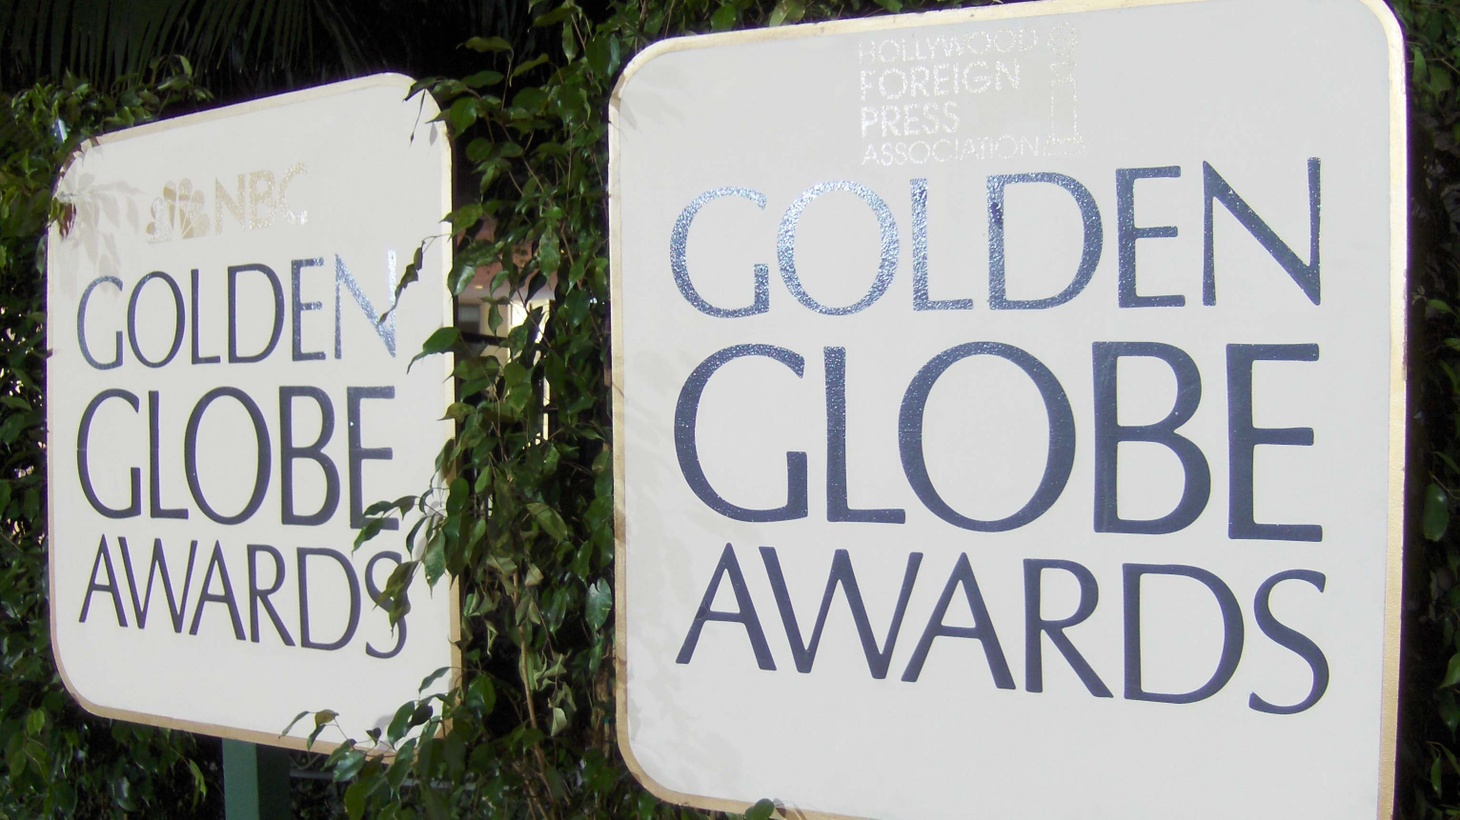 Signs for the annual Golden Globe Awards on NBC.